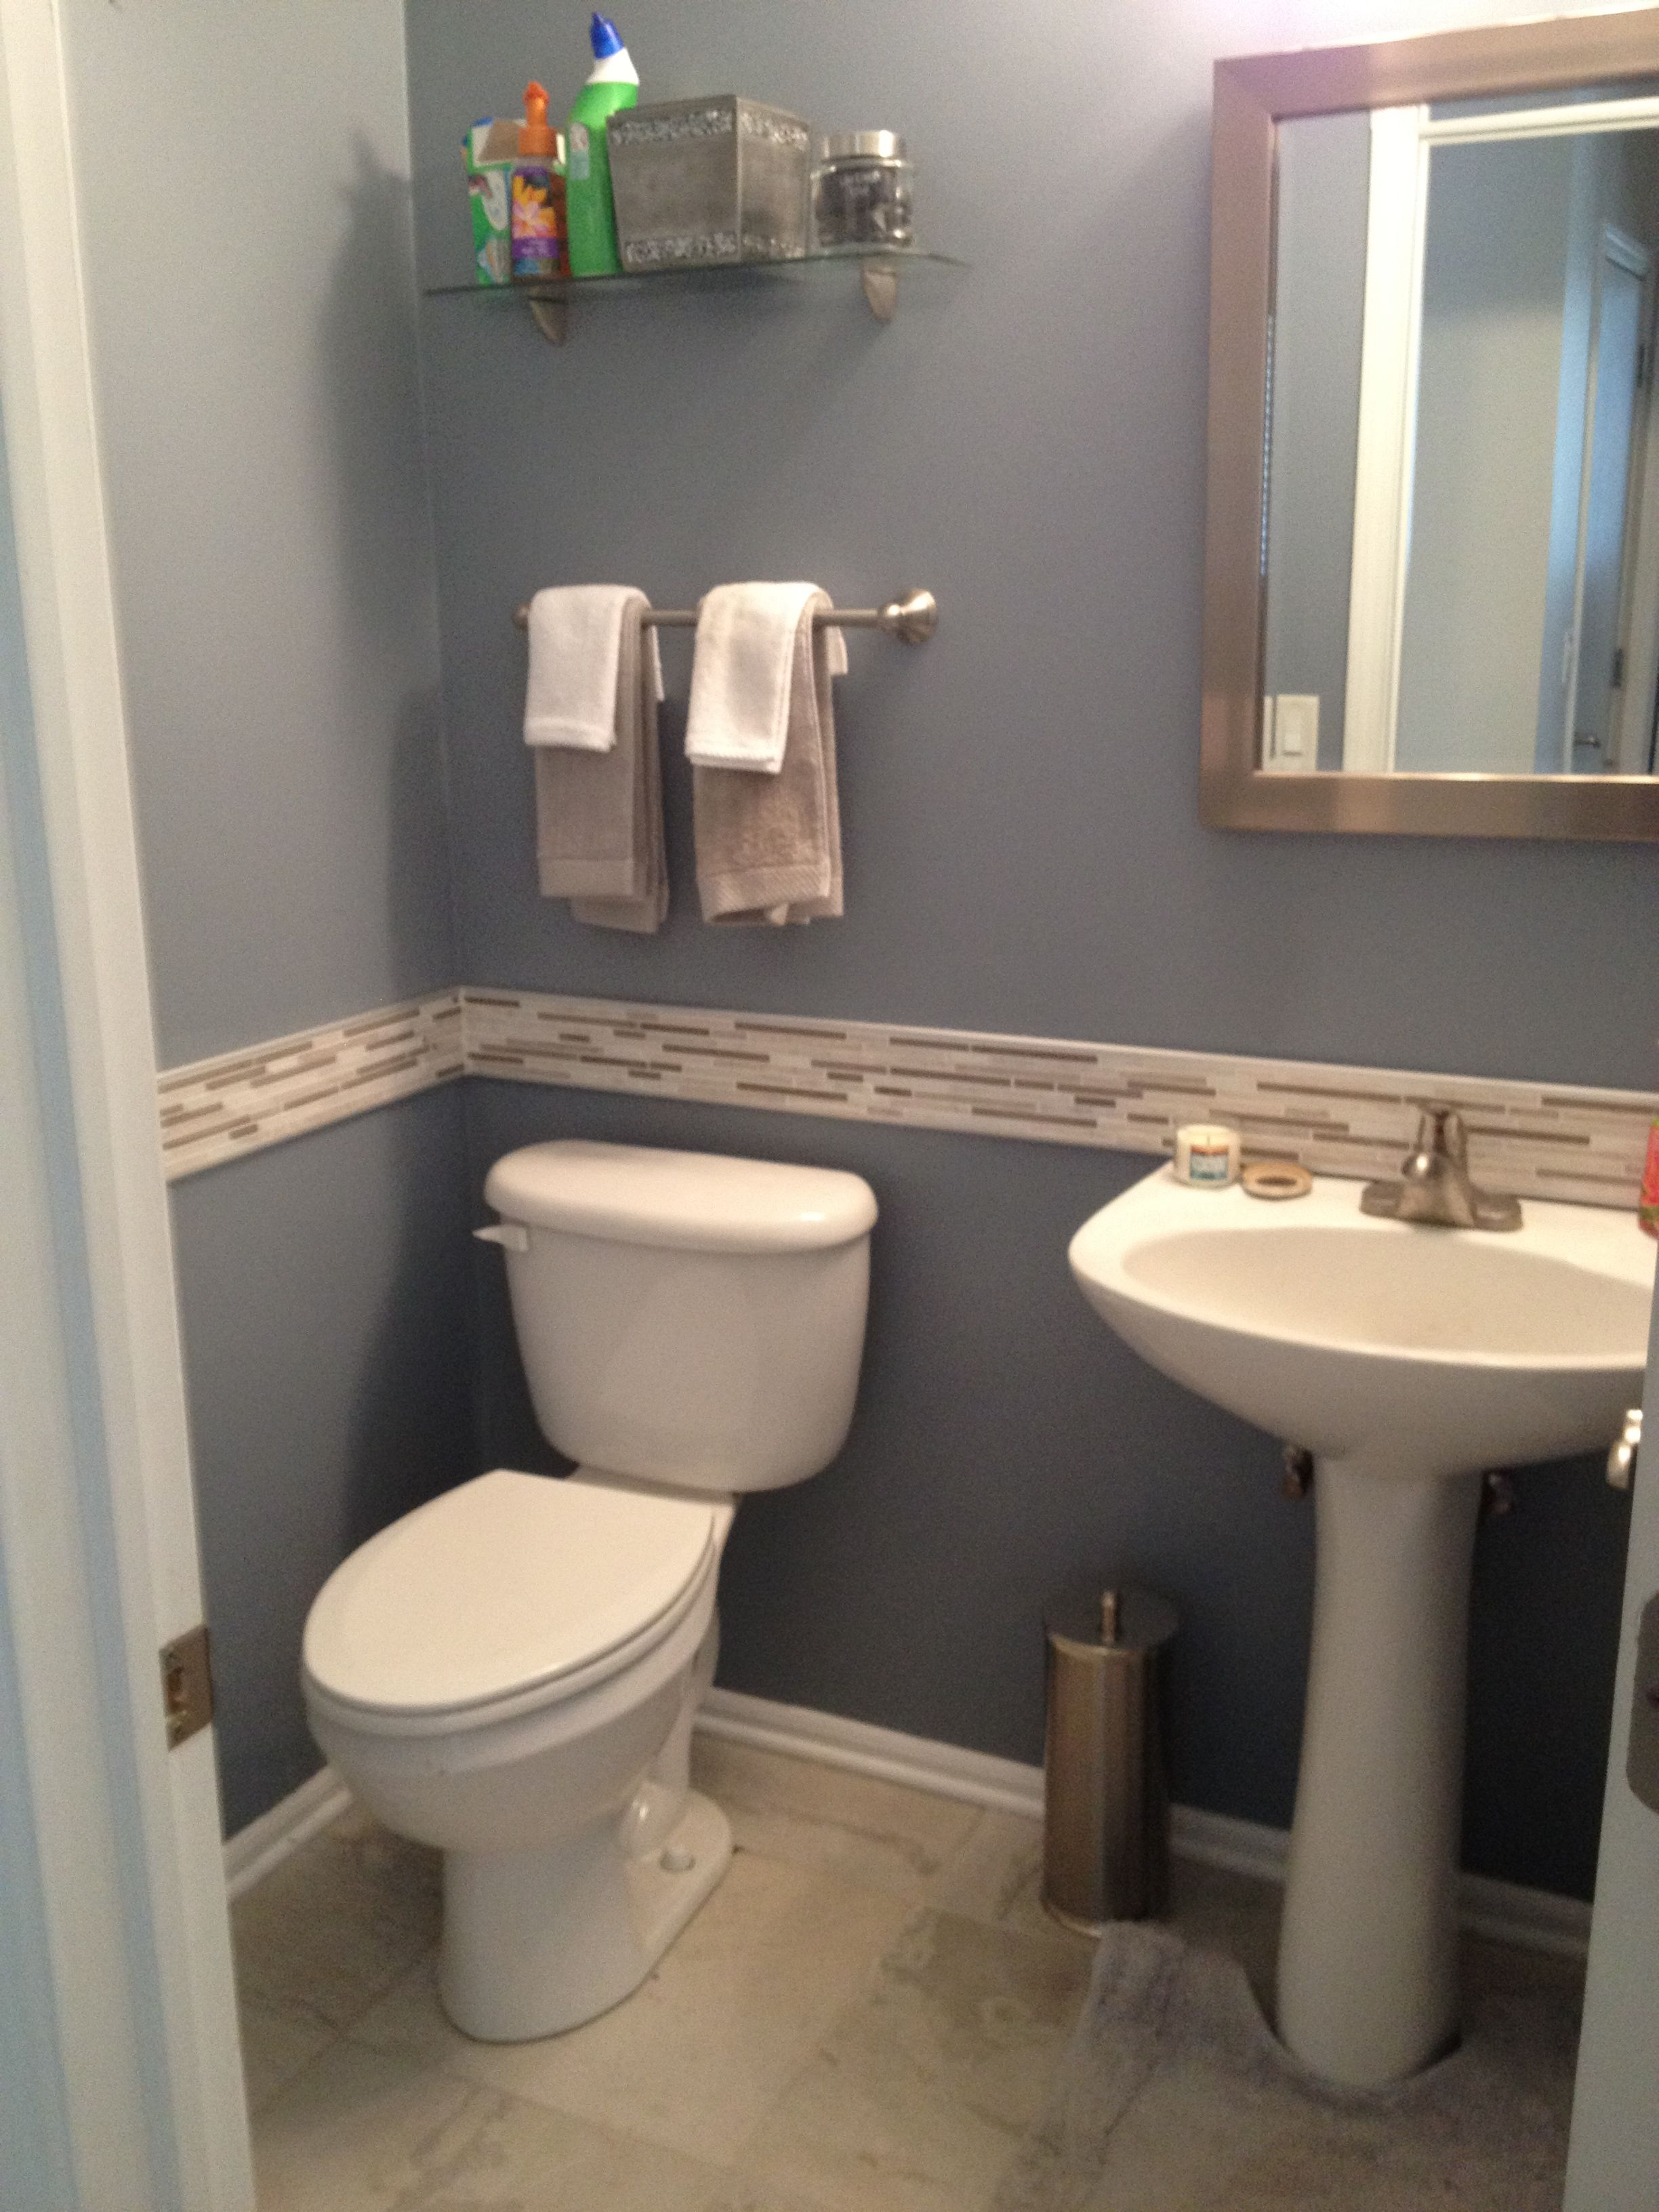 Half bath remodel my life projects pinterest half for Small main bathroom ideas